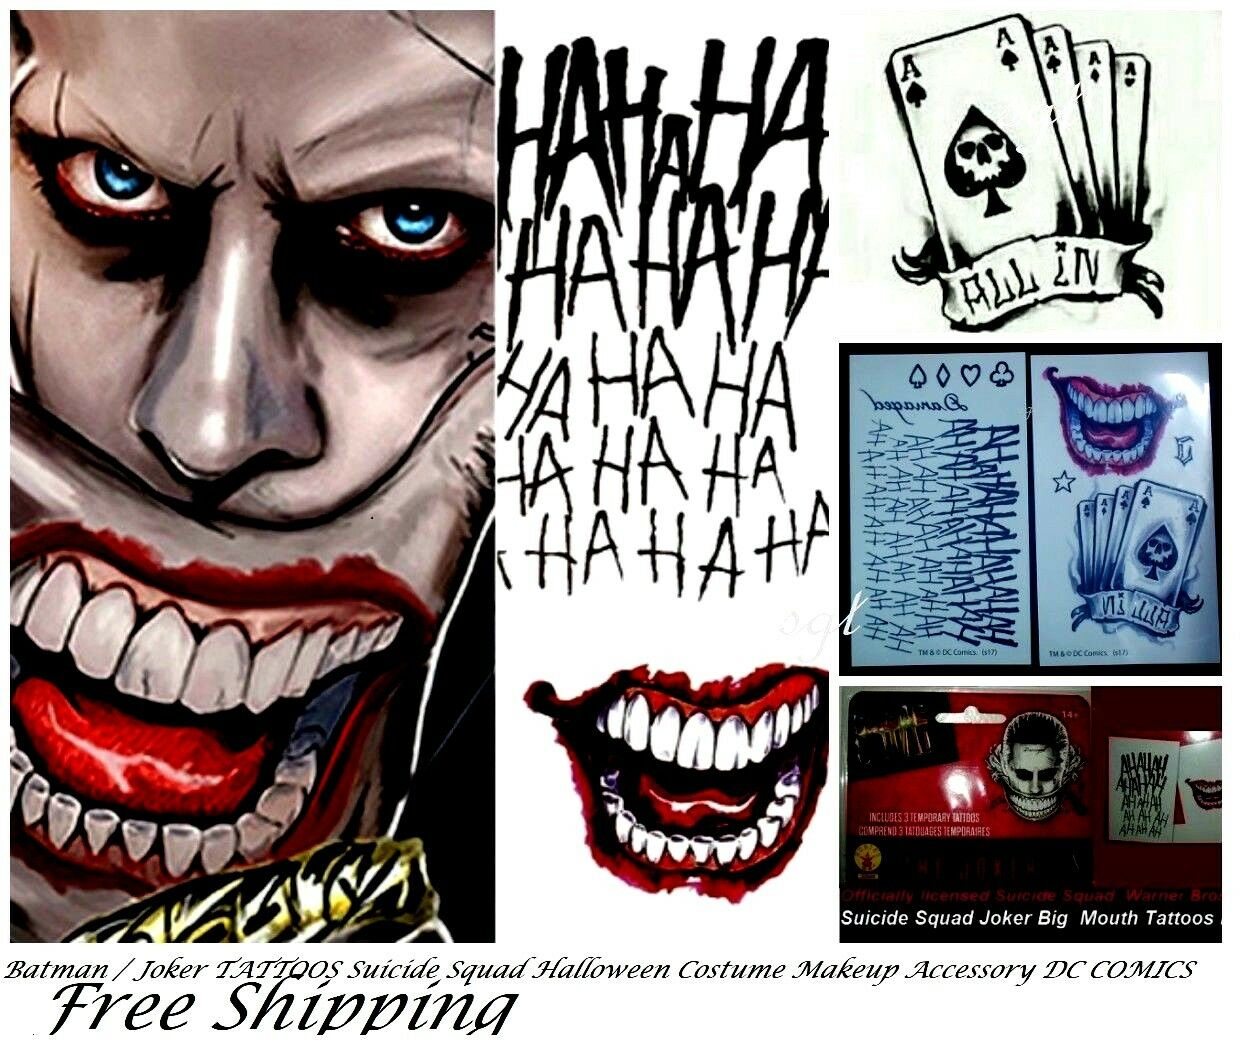 Suicide Squad Joker Batman Costume Tattoo Kit Makeup Halloween